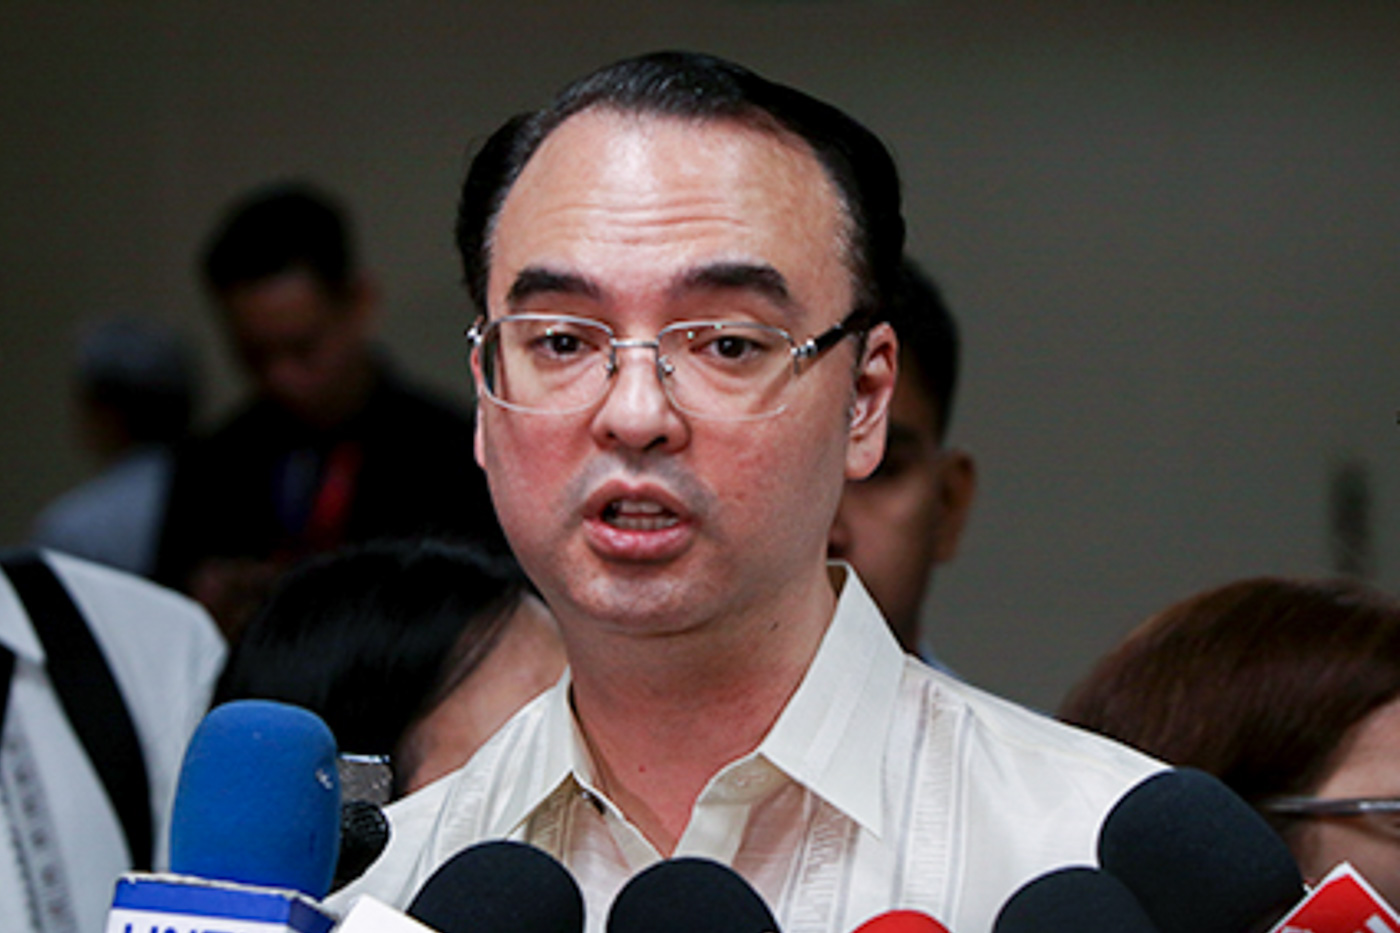 INCOMING DFA CHIEF. Senator Alan Peter Cayetano grants an interview with reporters on May 17, 2017, after he hurdled his confirmation hearing as DFA chief for only 3 minutes. Photo by Lito Boras/Rappler